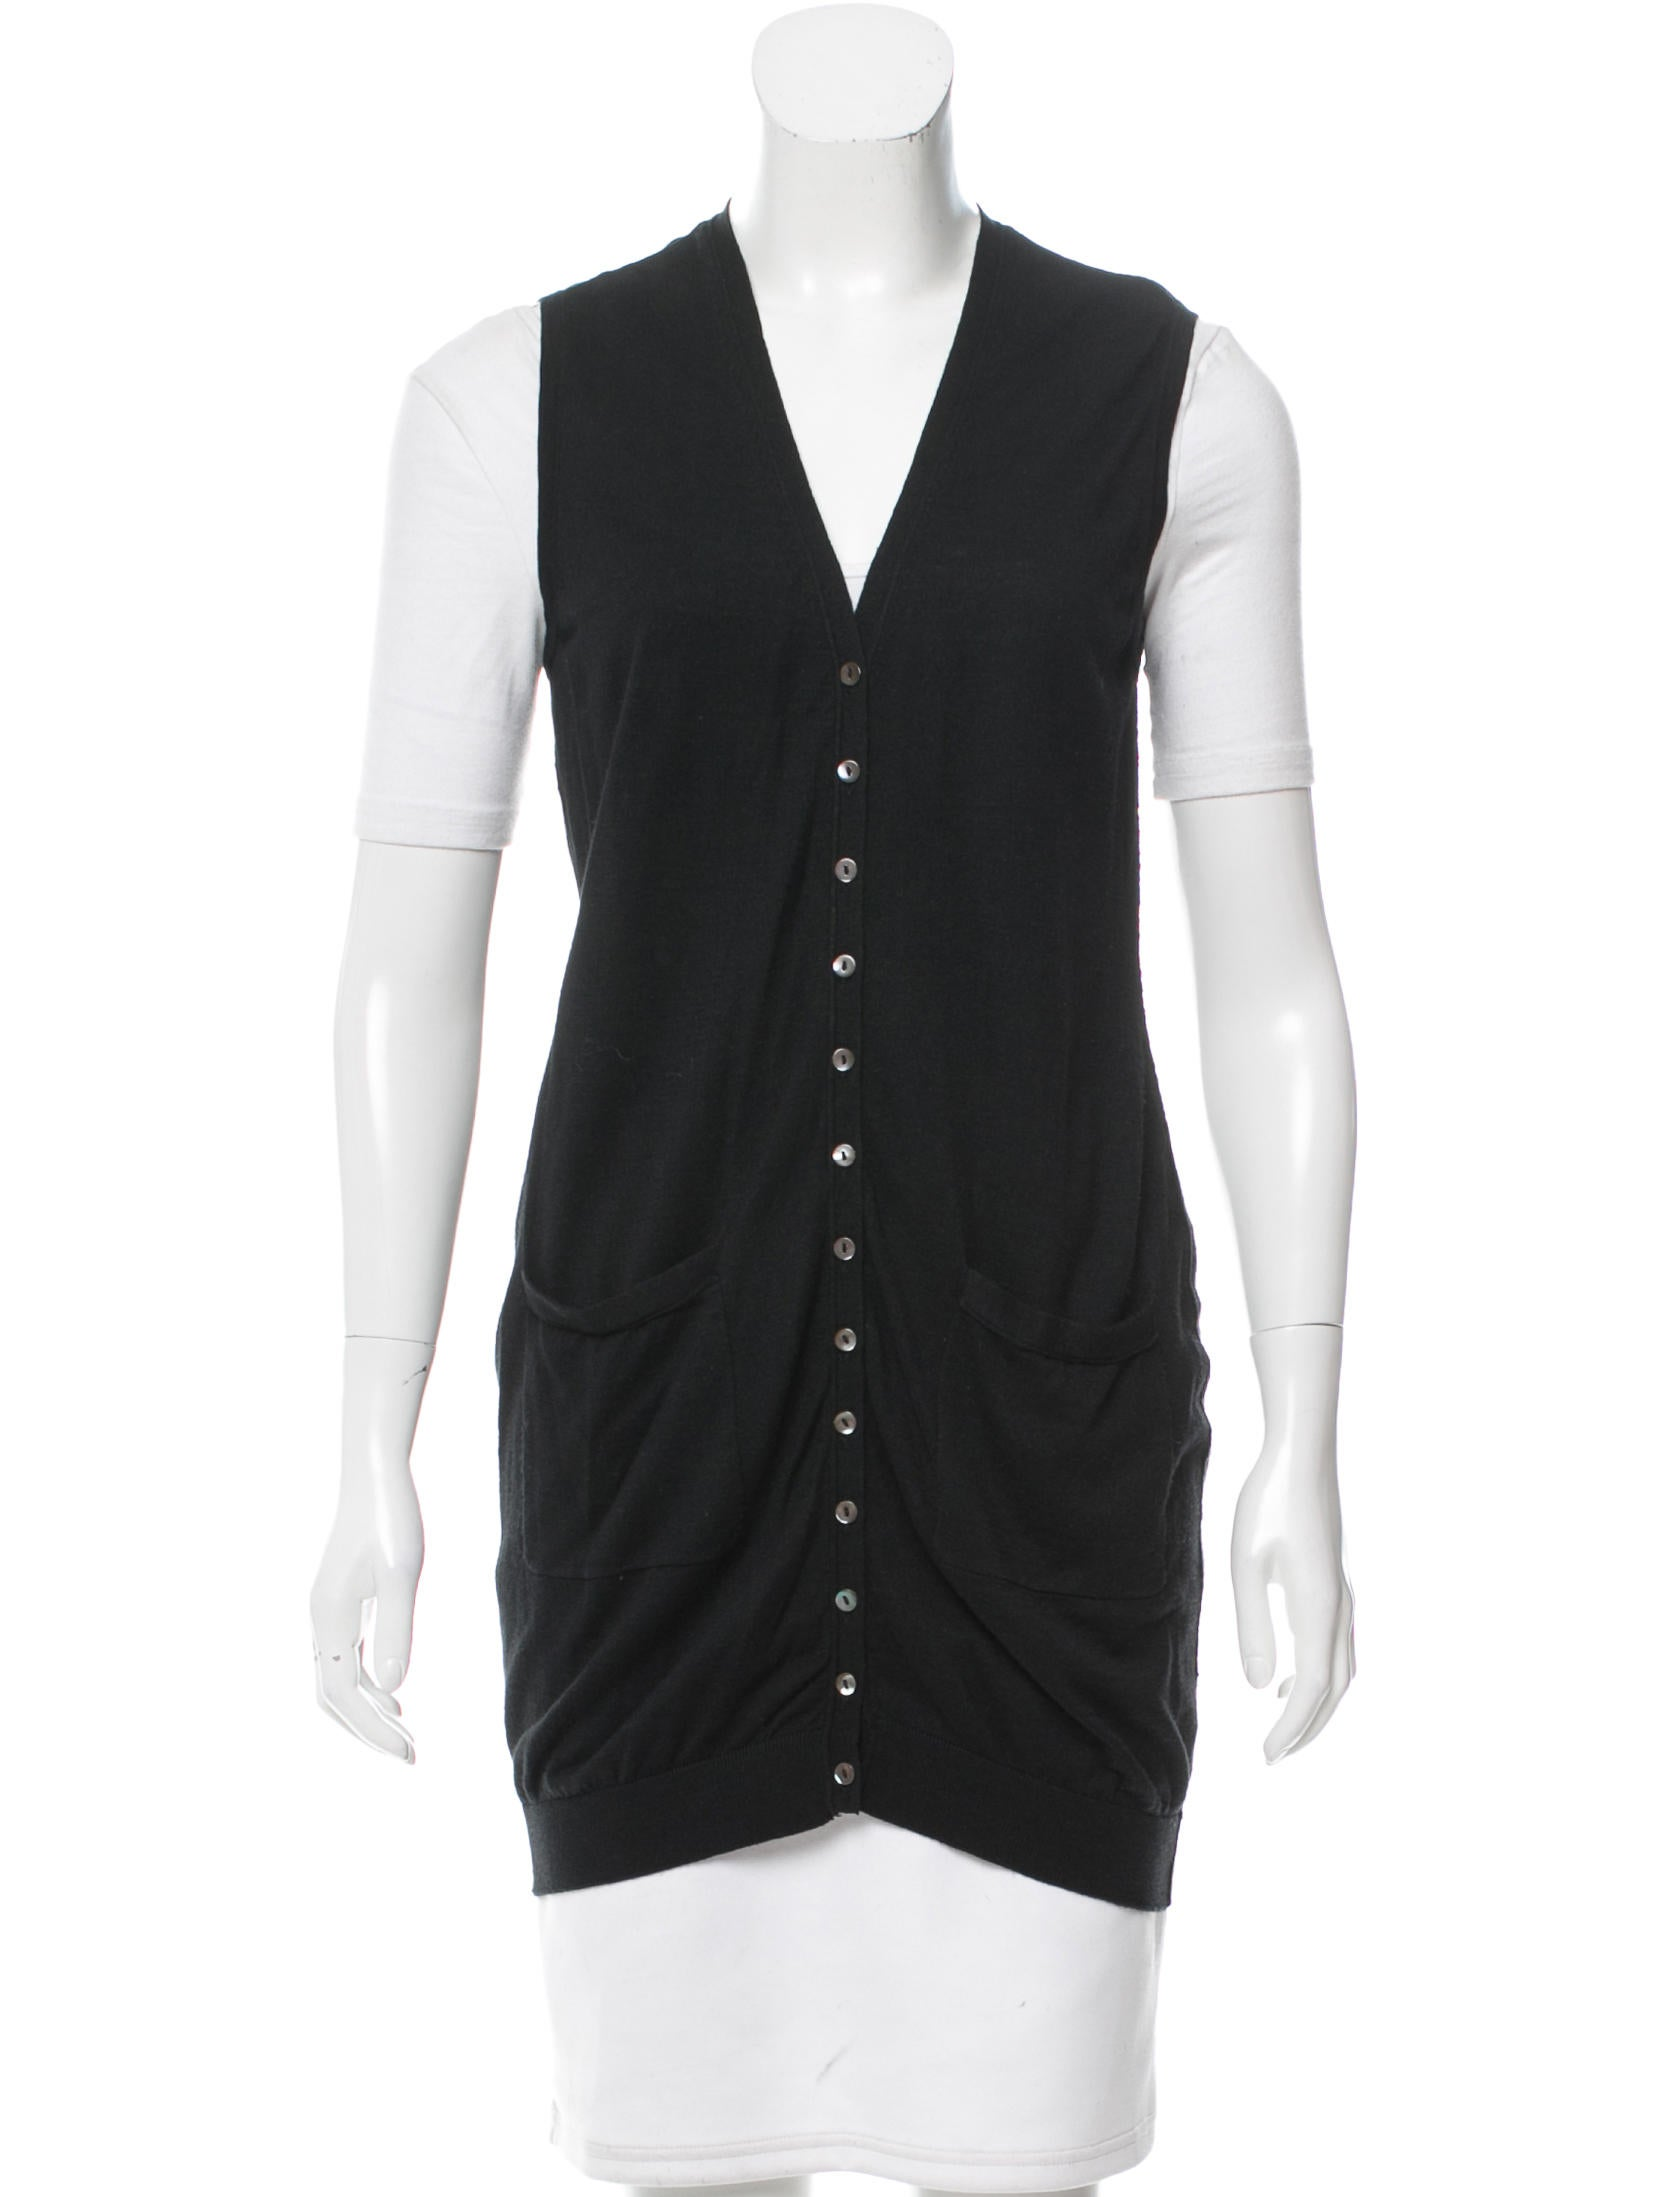 Unique Bargains Men Sleeveless Button Down Formal Wedding Dress Suit Waistcoat Vest. Sold by Unique Bargains. $ $ Sold by STAND UP Ranchers. $ Black n Bianco Boys Sateen Burgundy Button Down Long Sleeve Dress Shirt. Sold by House Bianco. $ $ - $